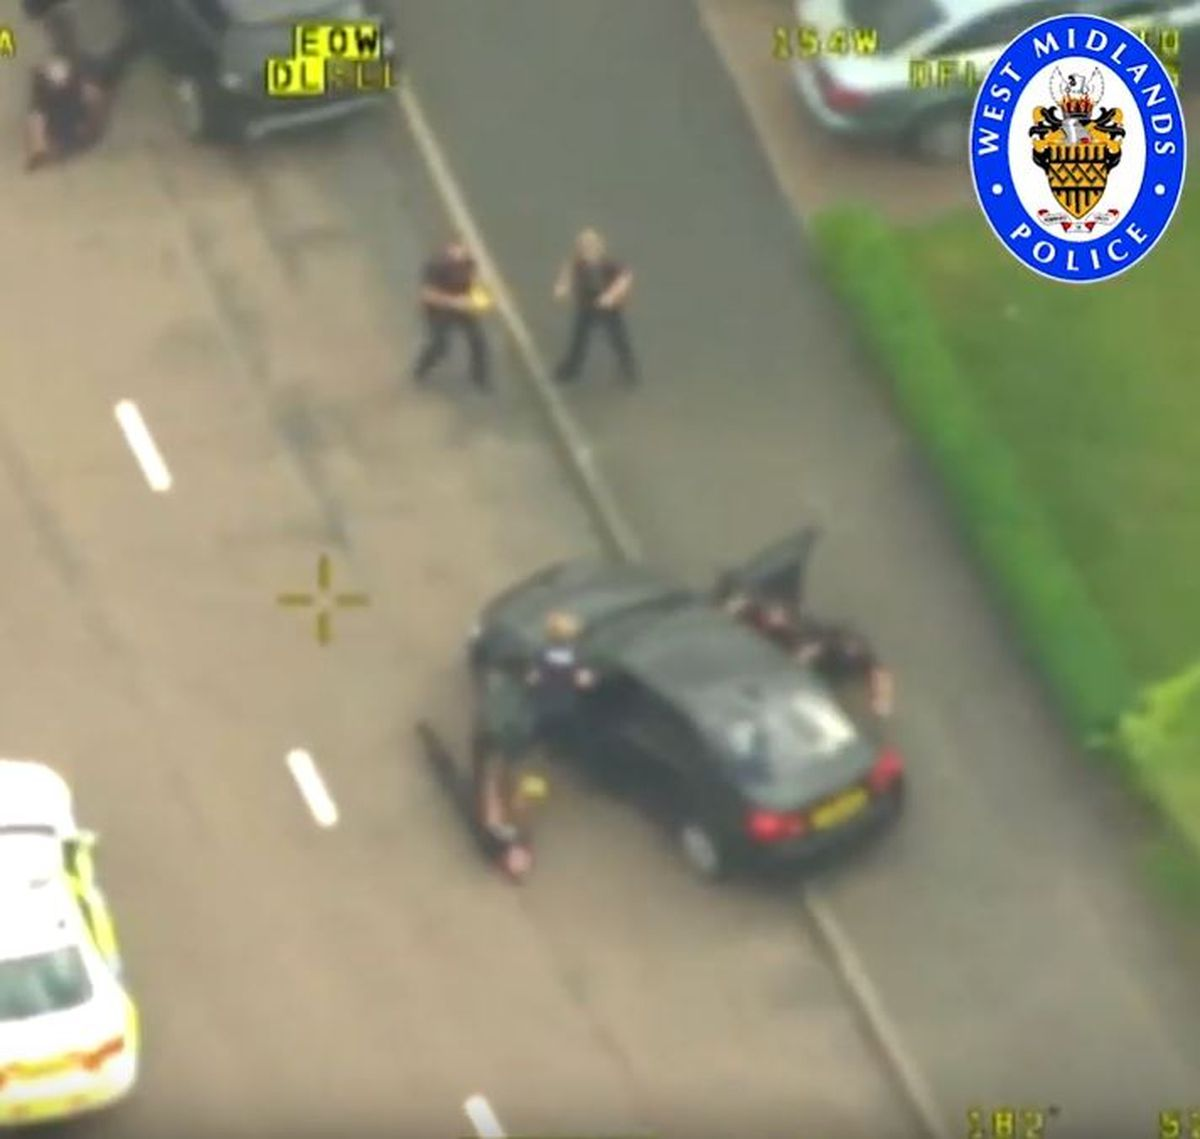 Aerial footage shows the unmarked car with Hussain at the wheel